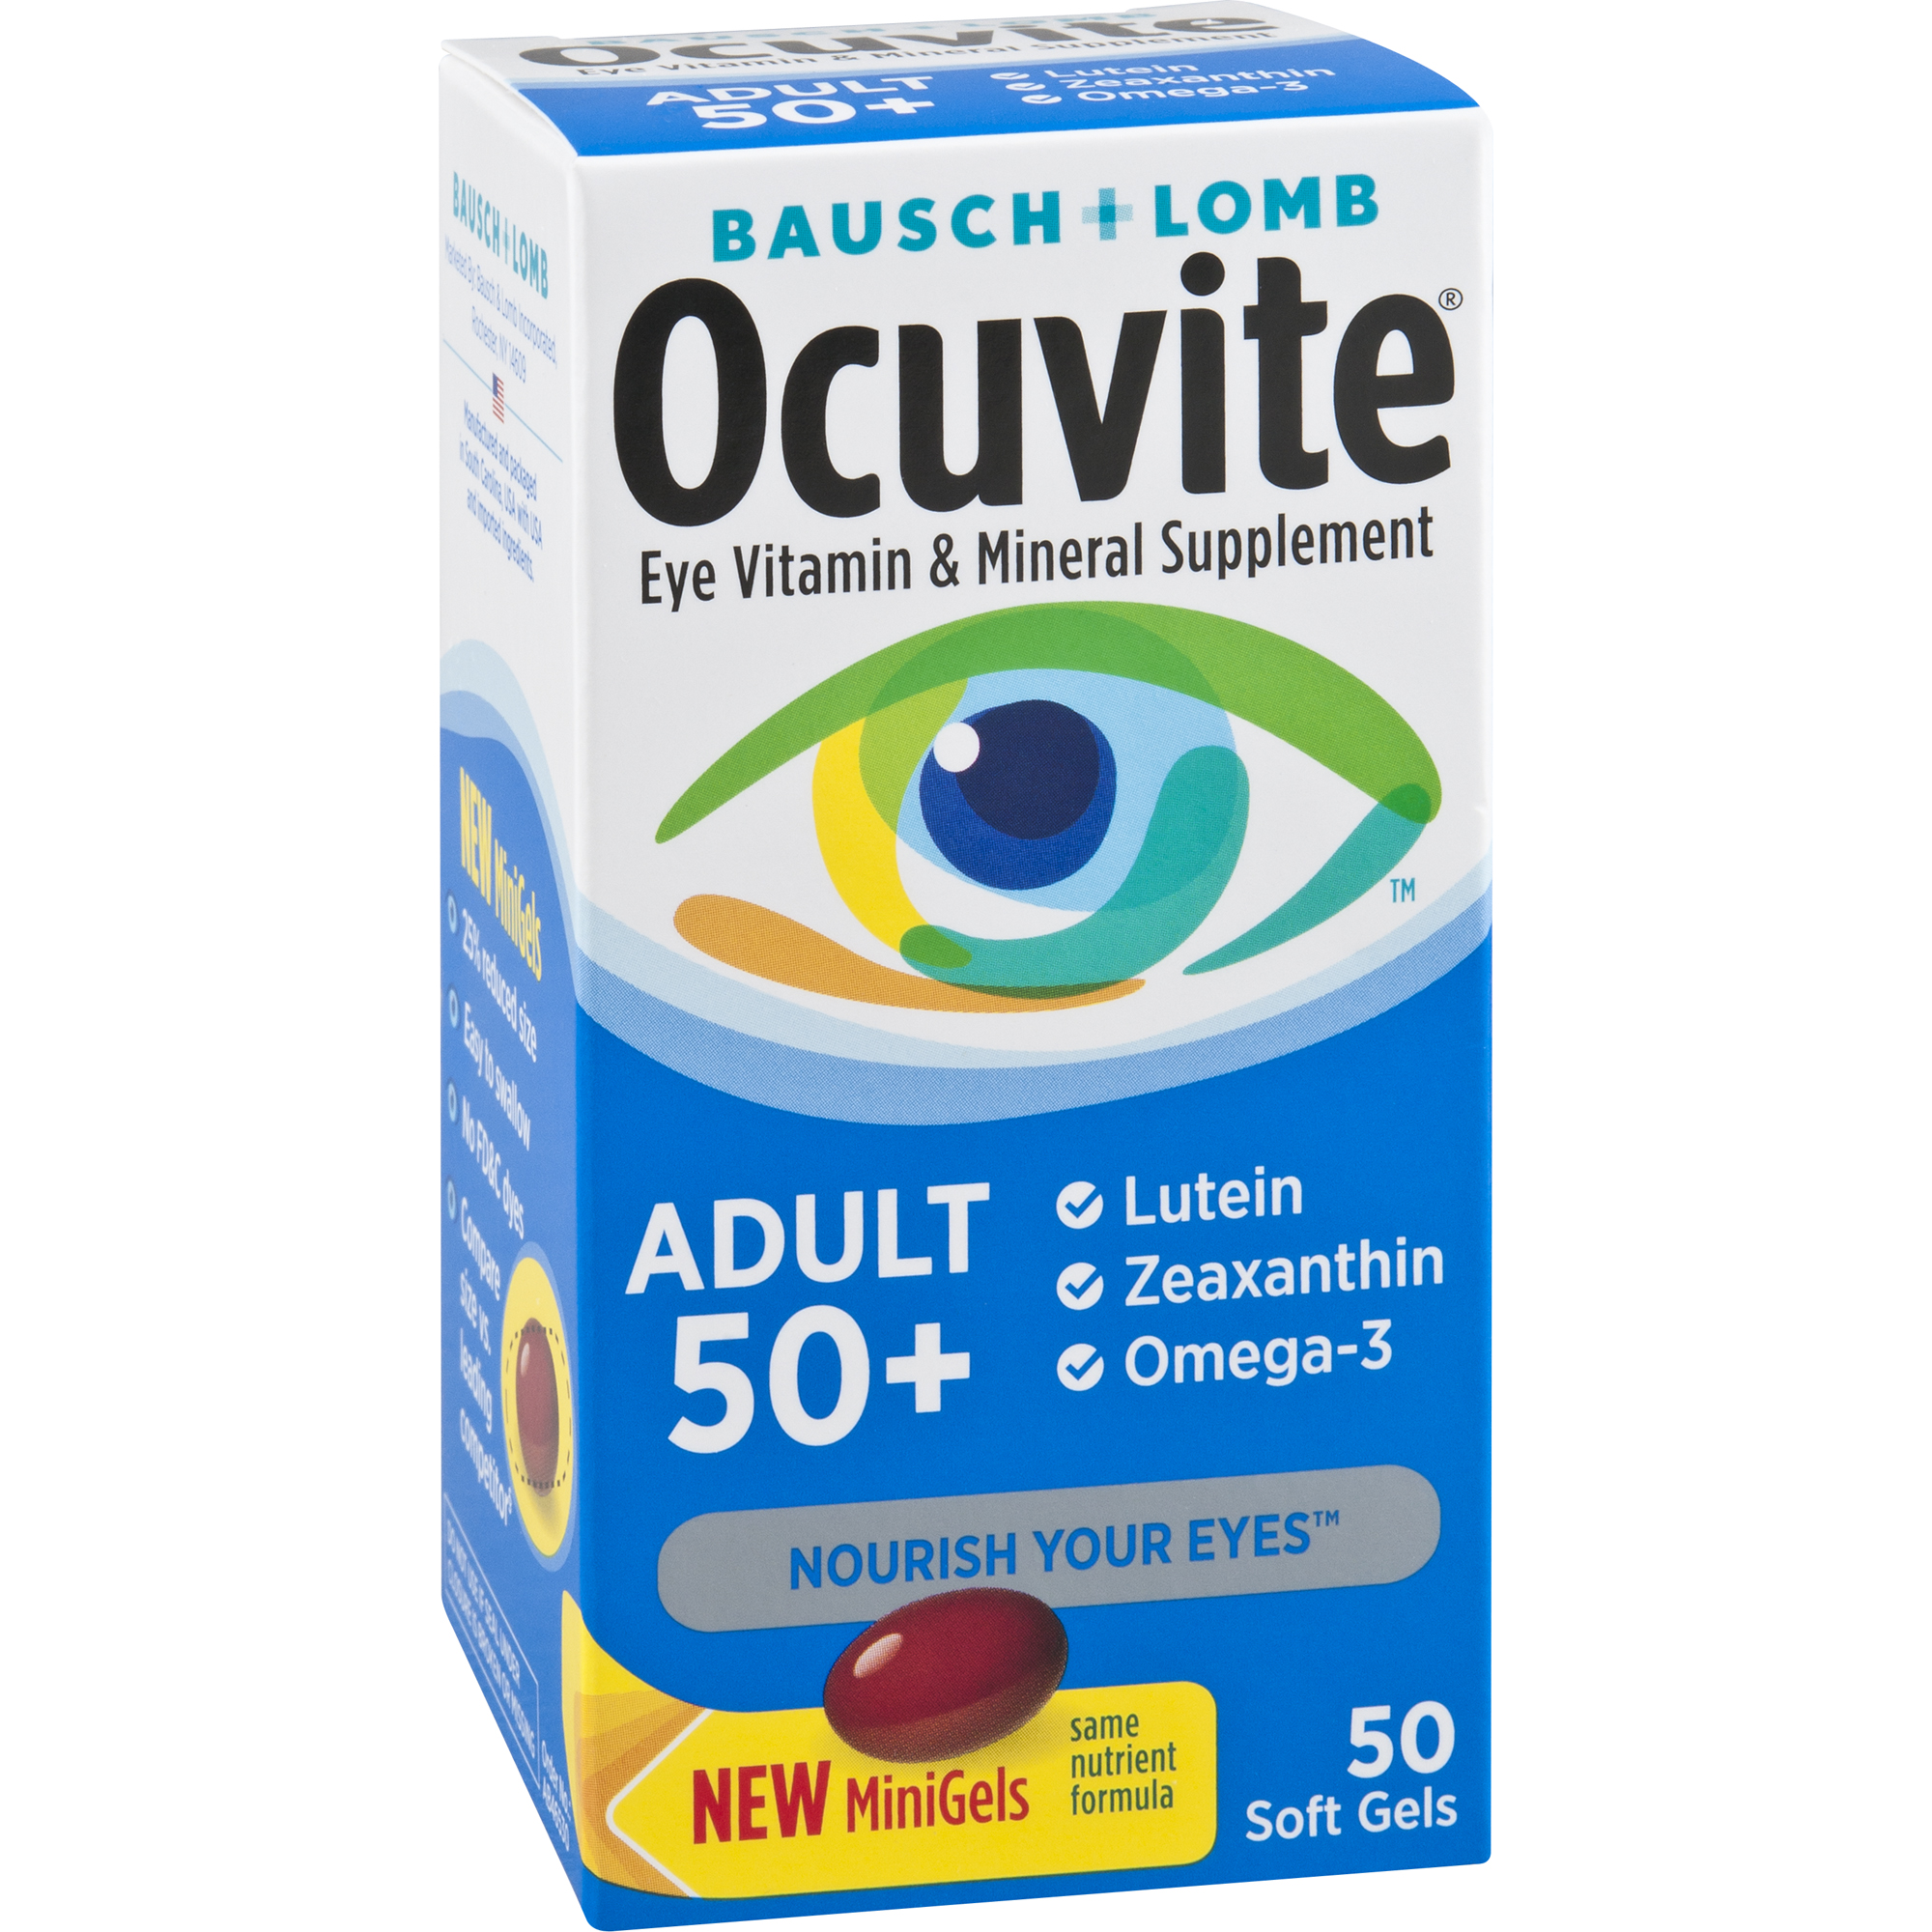 Ocuvite Eye Vitamin Adult 50+ Formula Eye Health Vitamins, 50 CT Soft Gels - Walmart.com at Walmart - Vision Center in Connersville, IN | Tuggl